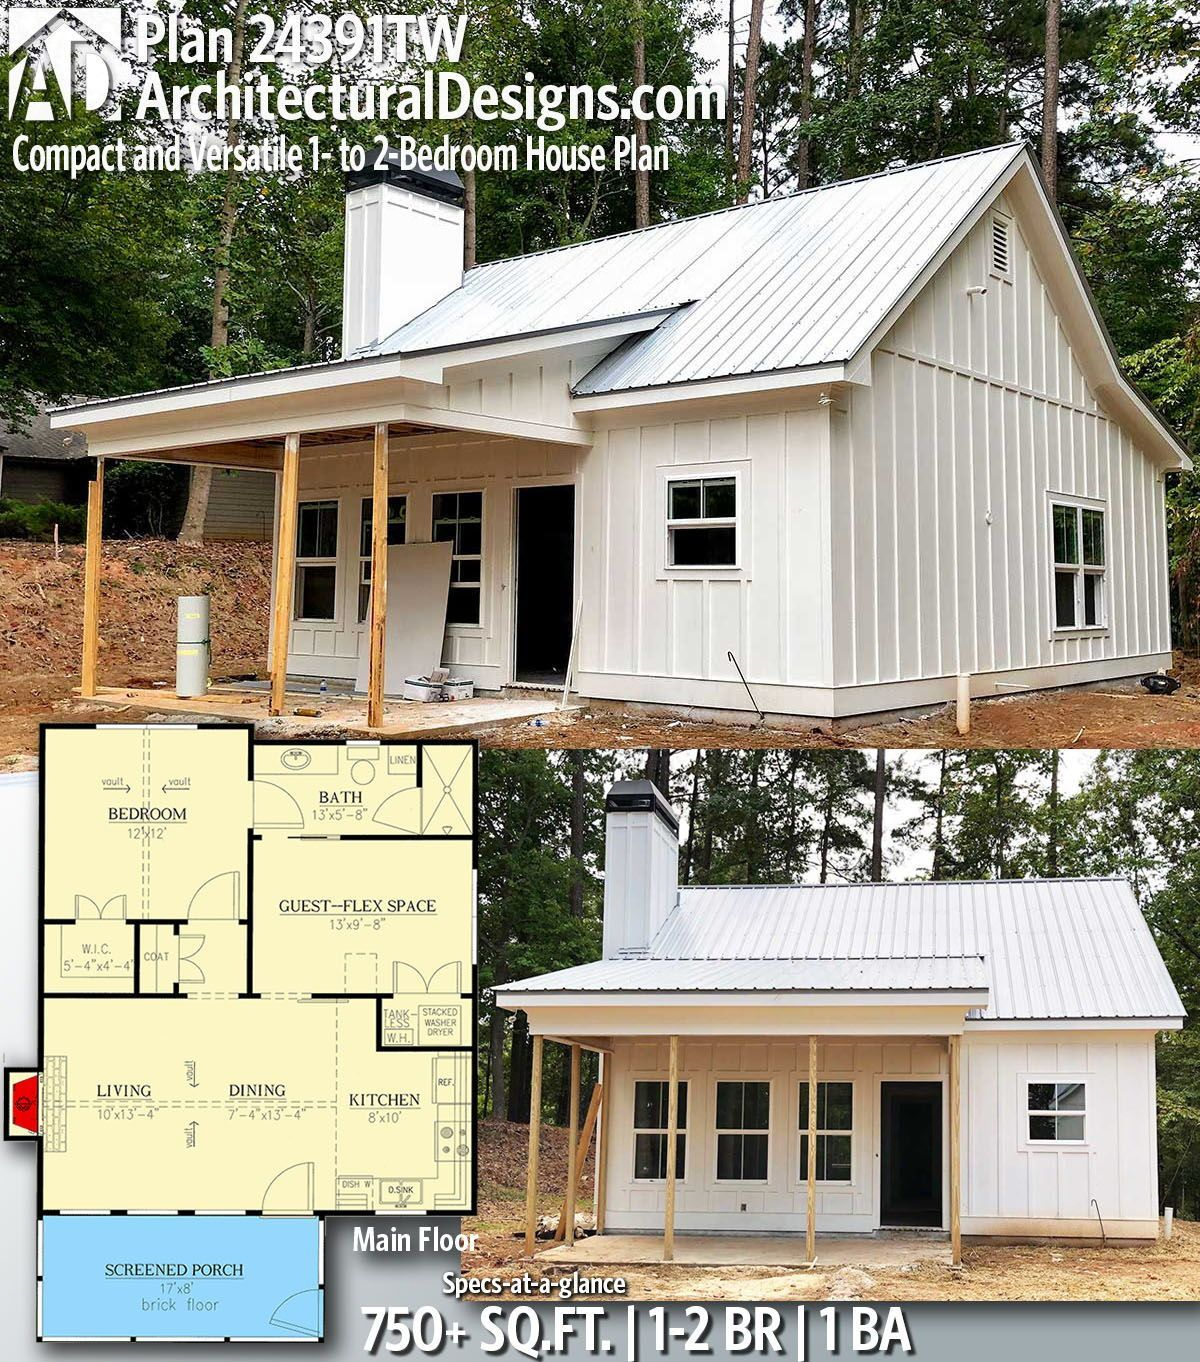 Architectural designs tiny house plan tw gives you bedrooms baths and sq ft ready when are where do want to build also rh pinterest